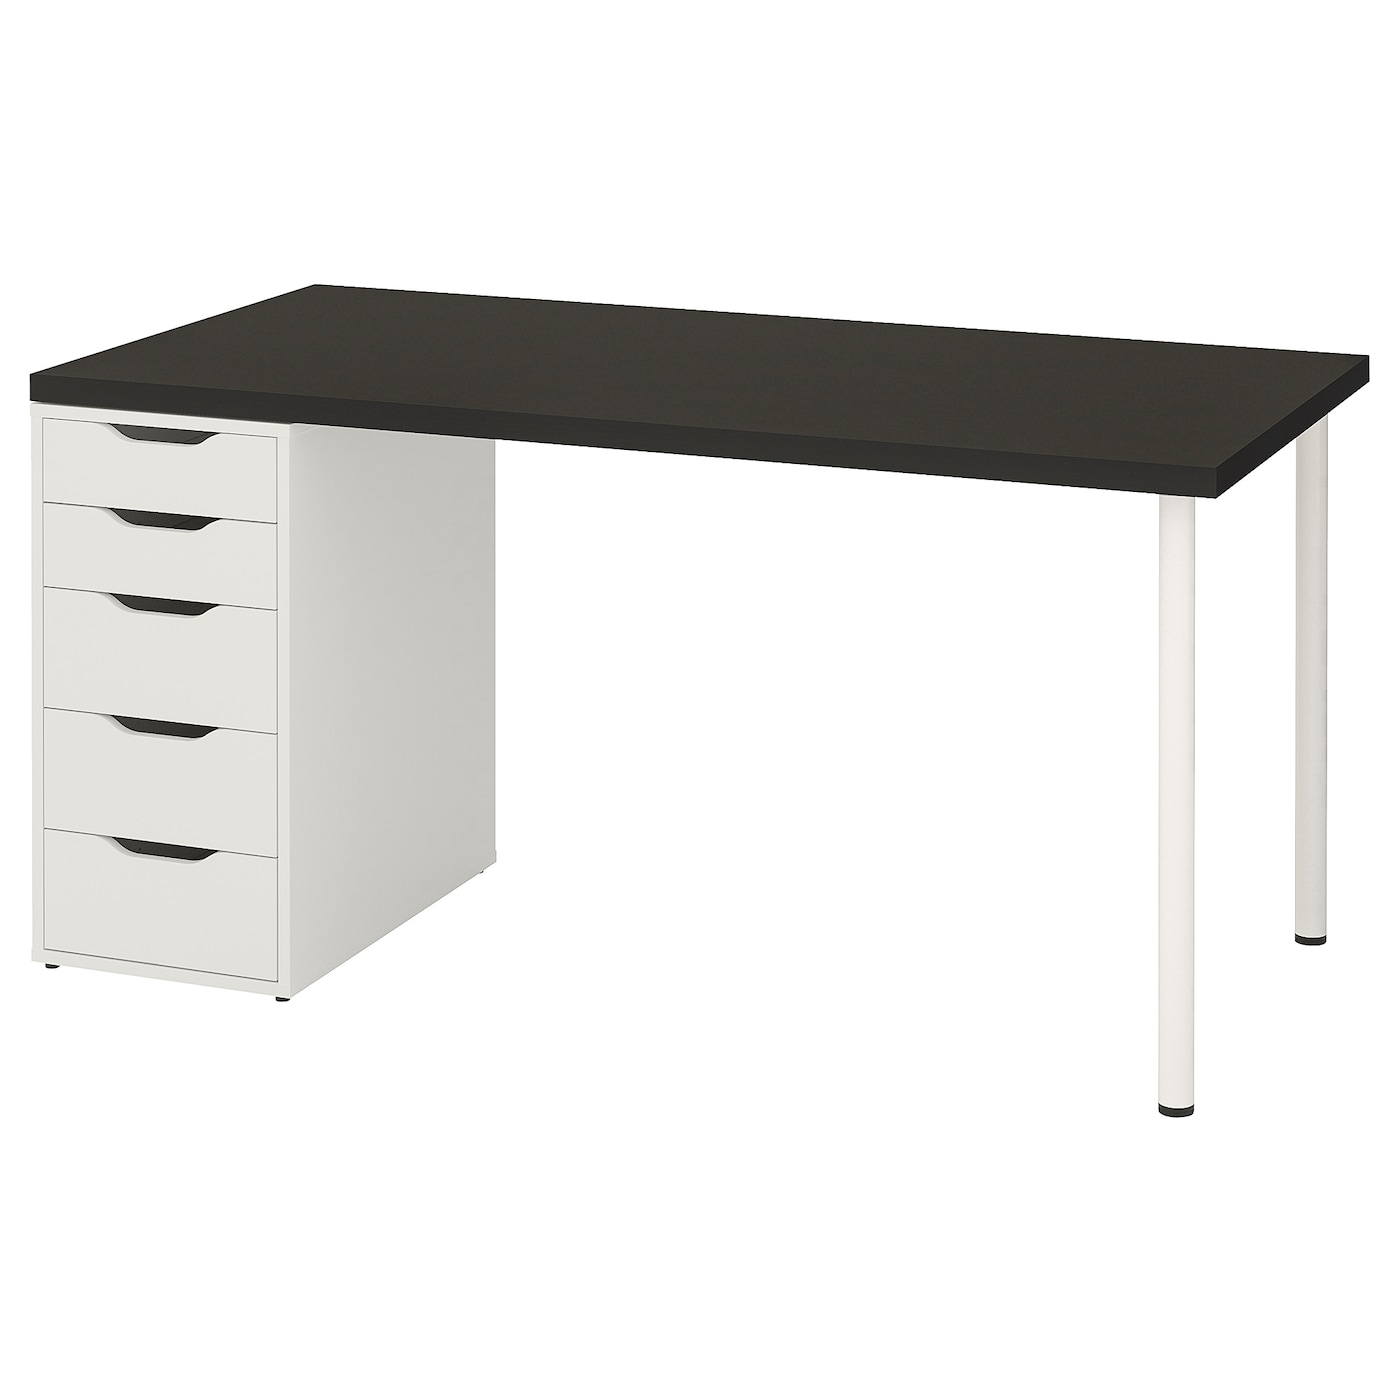 LINNMON / ALEX Table - black-brown/white 12x12 cm